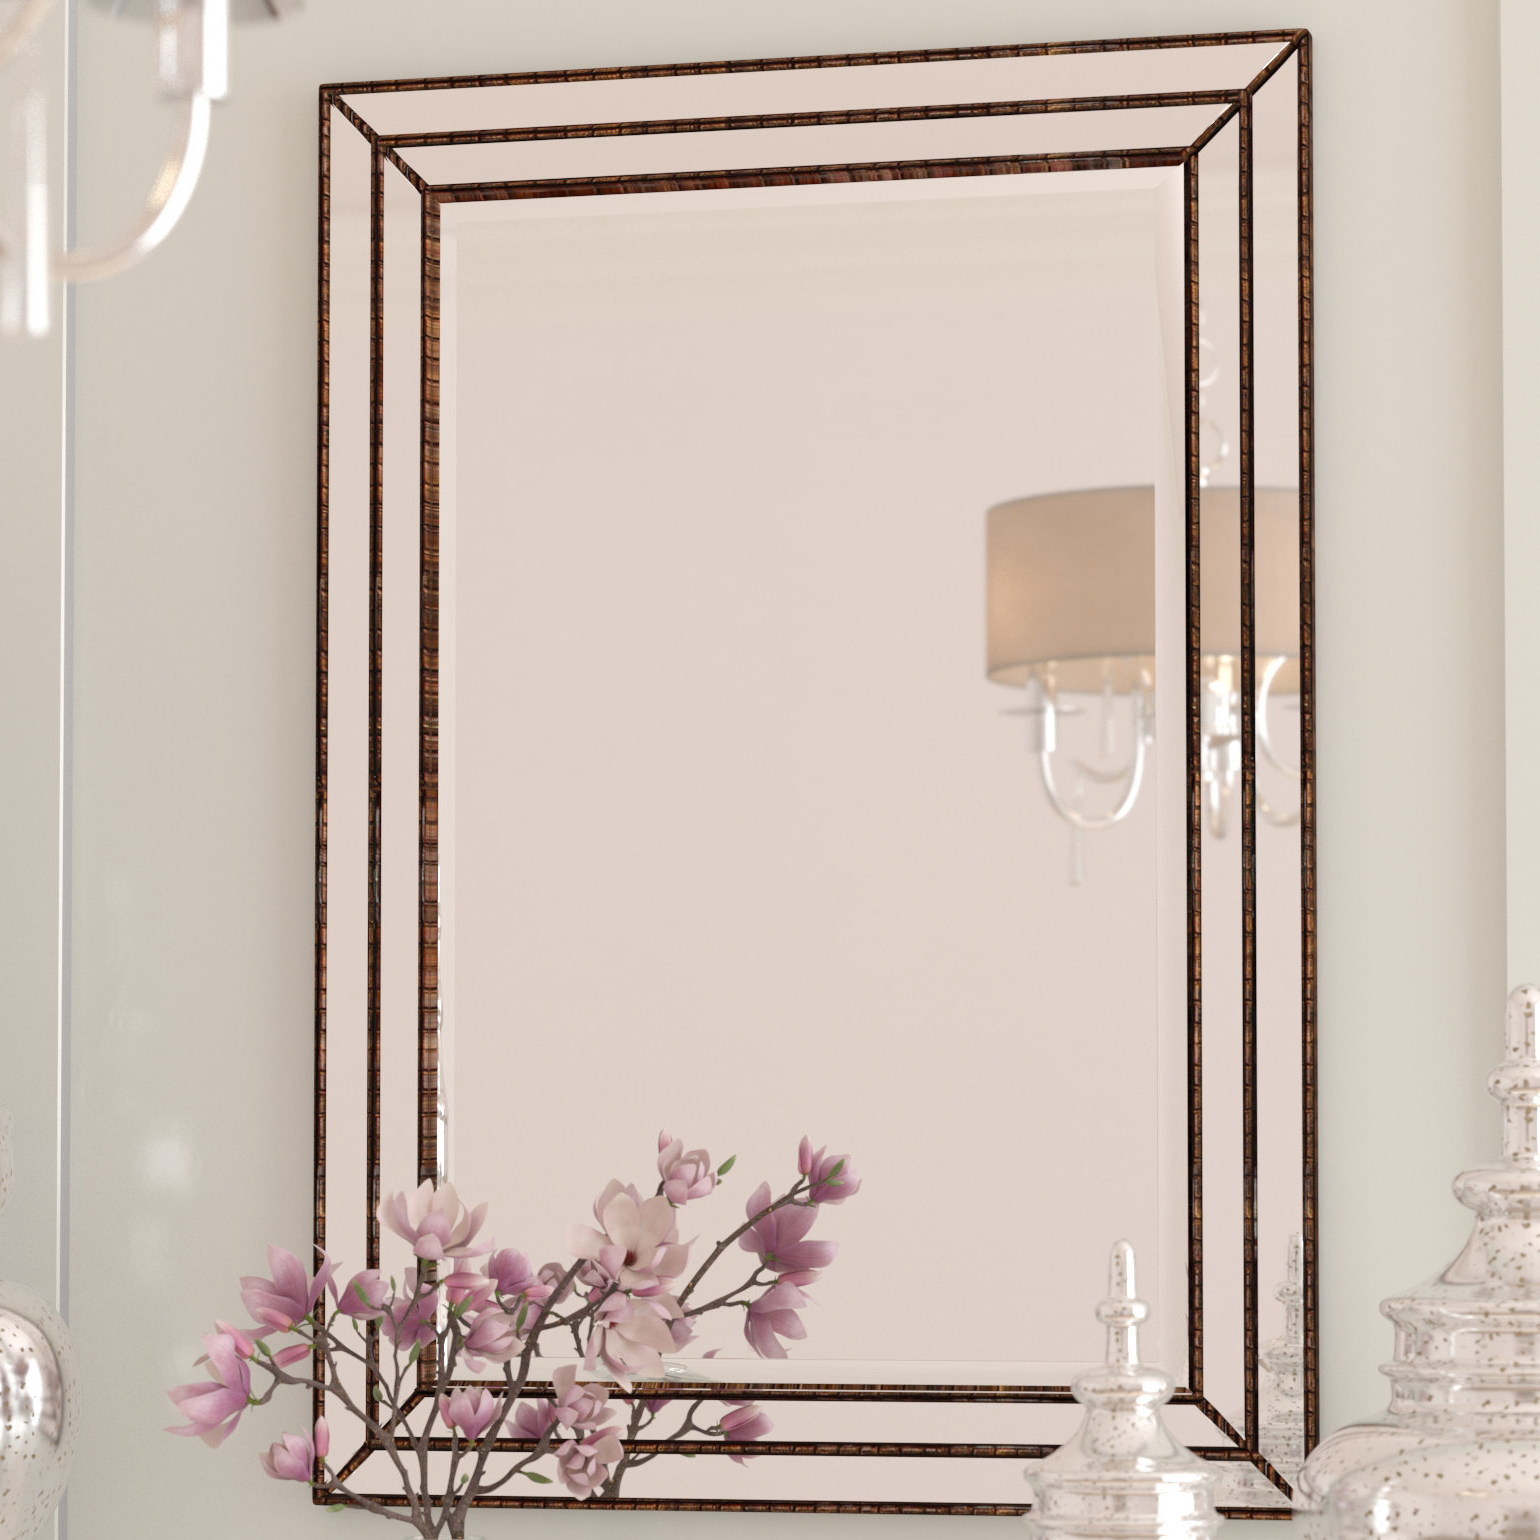 Widely Used Willacoochee Traditional Beveled Accent Mirrors Regarding Willacoochee Traditional Rectangle Accent Mirror (View 12 of 20)